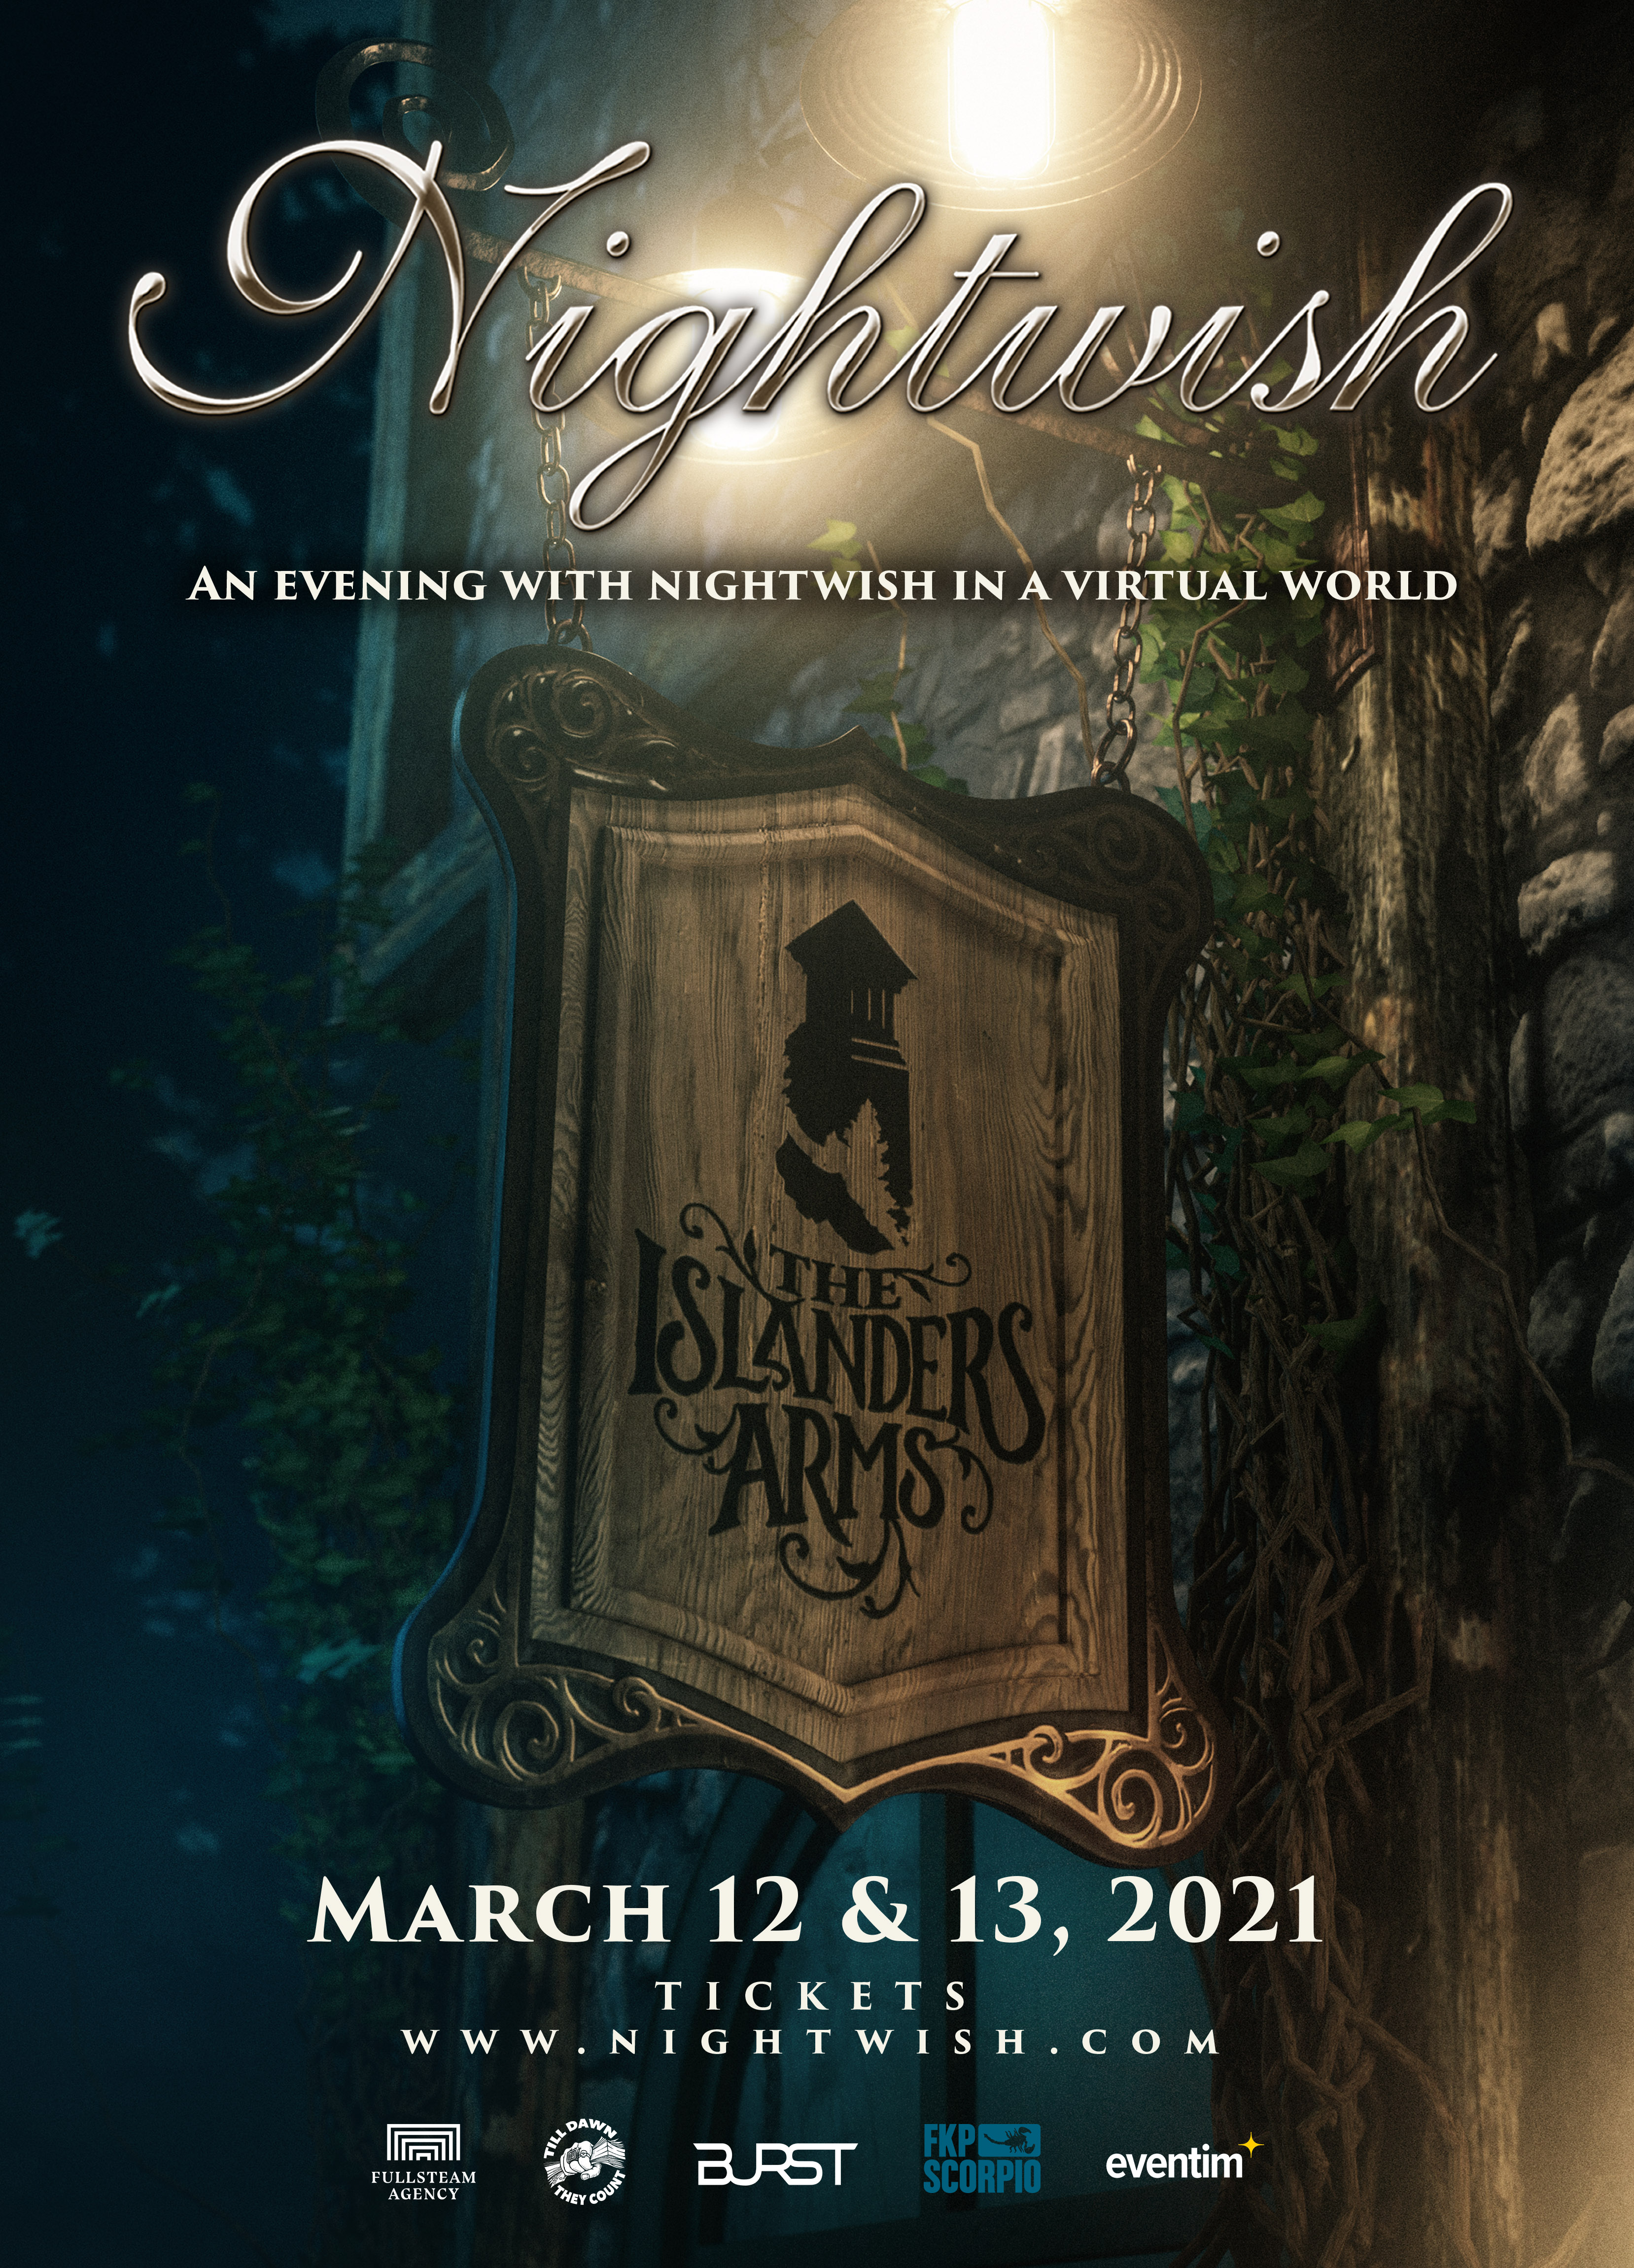 An Evening With Nightwish In A Virtual World Poster